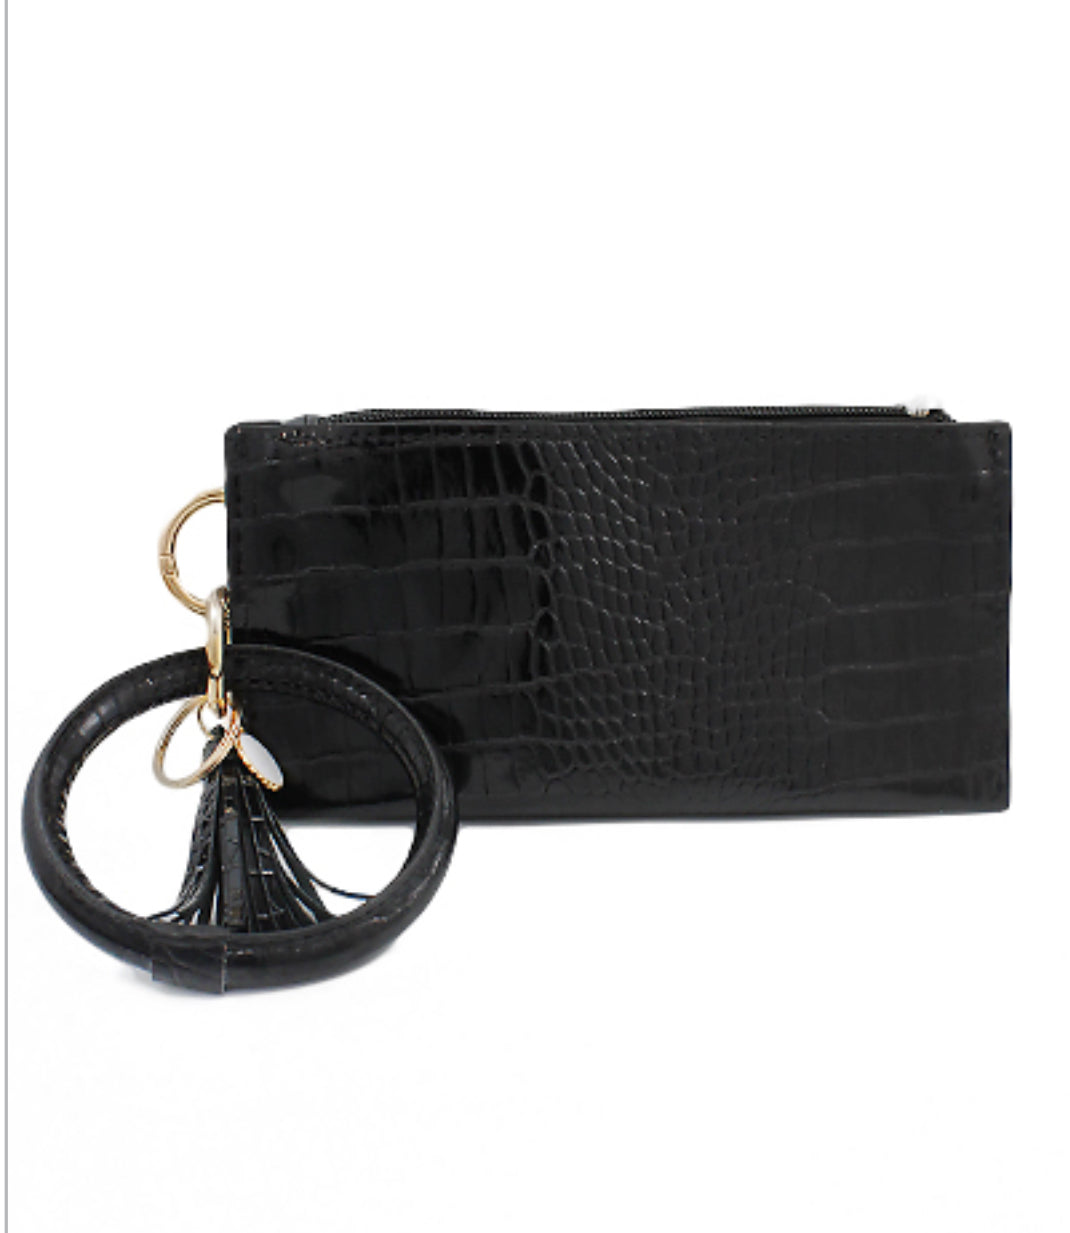 Black Patent Leather Wristlet